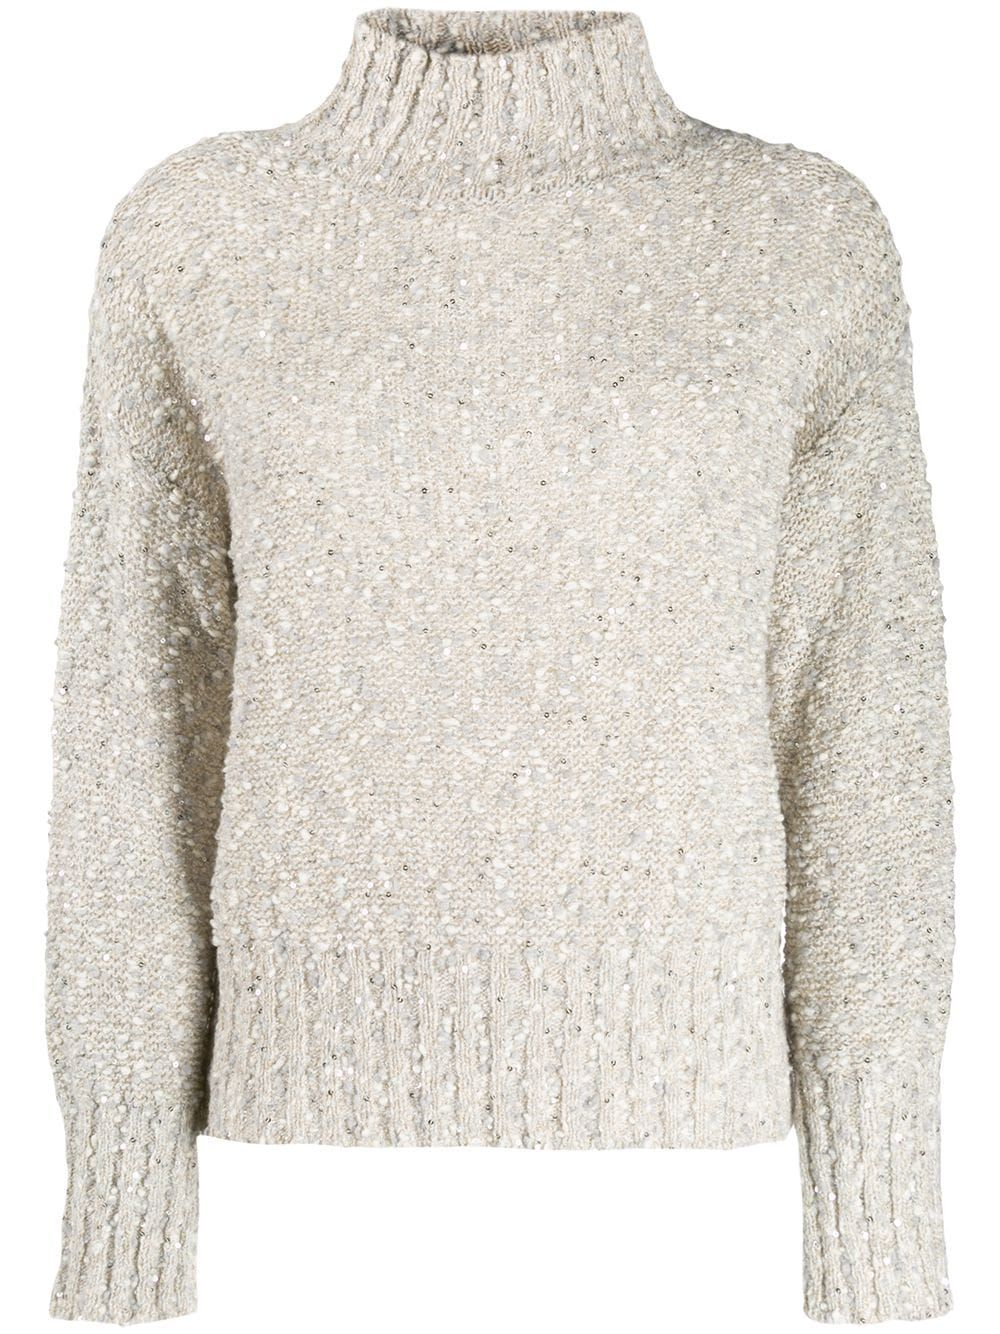 Snobby Sheep mottled sequin knit jumper White | Knit